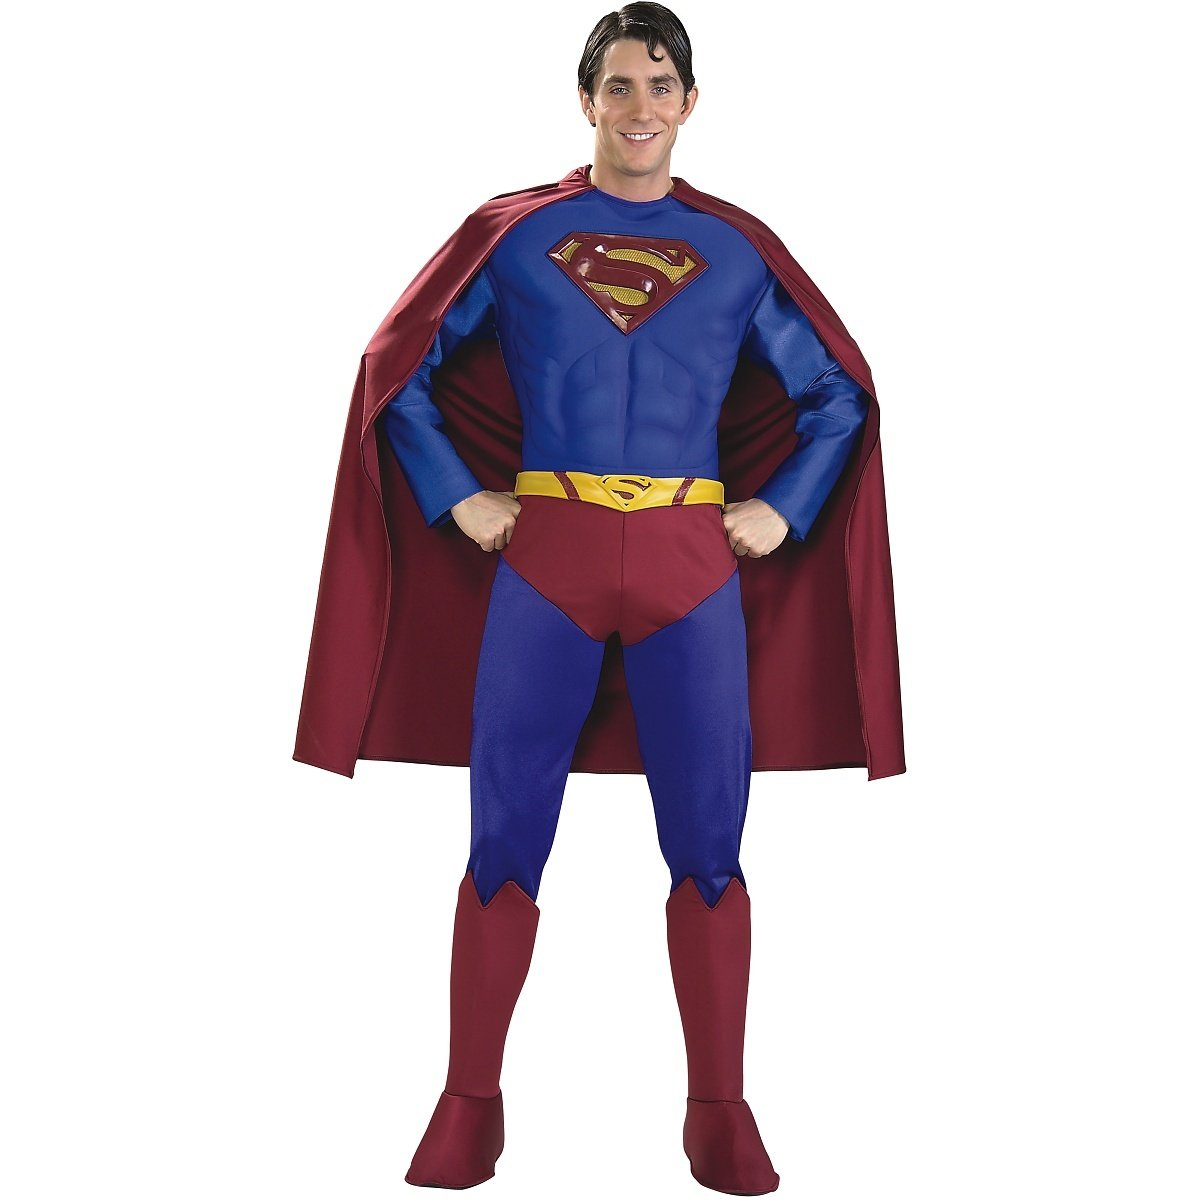 Rubie's Supreme Edition Muscle Chest Superman, Blue/Red, X-Large Costume by Rubie's